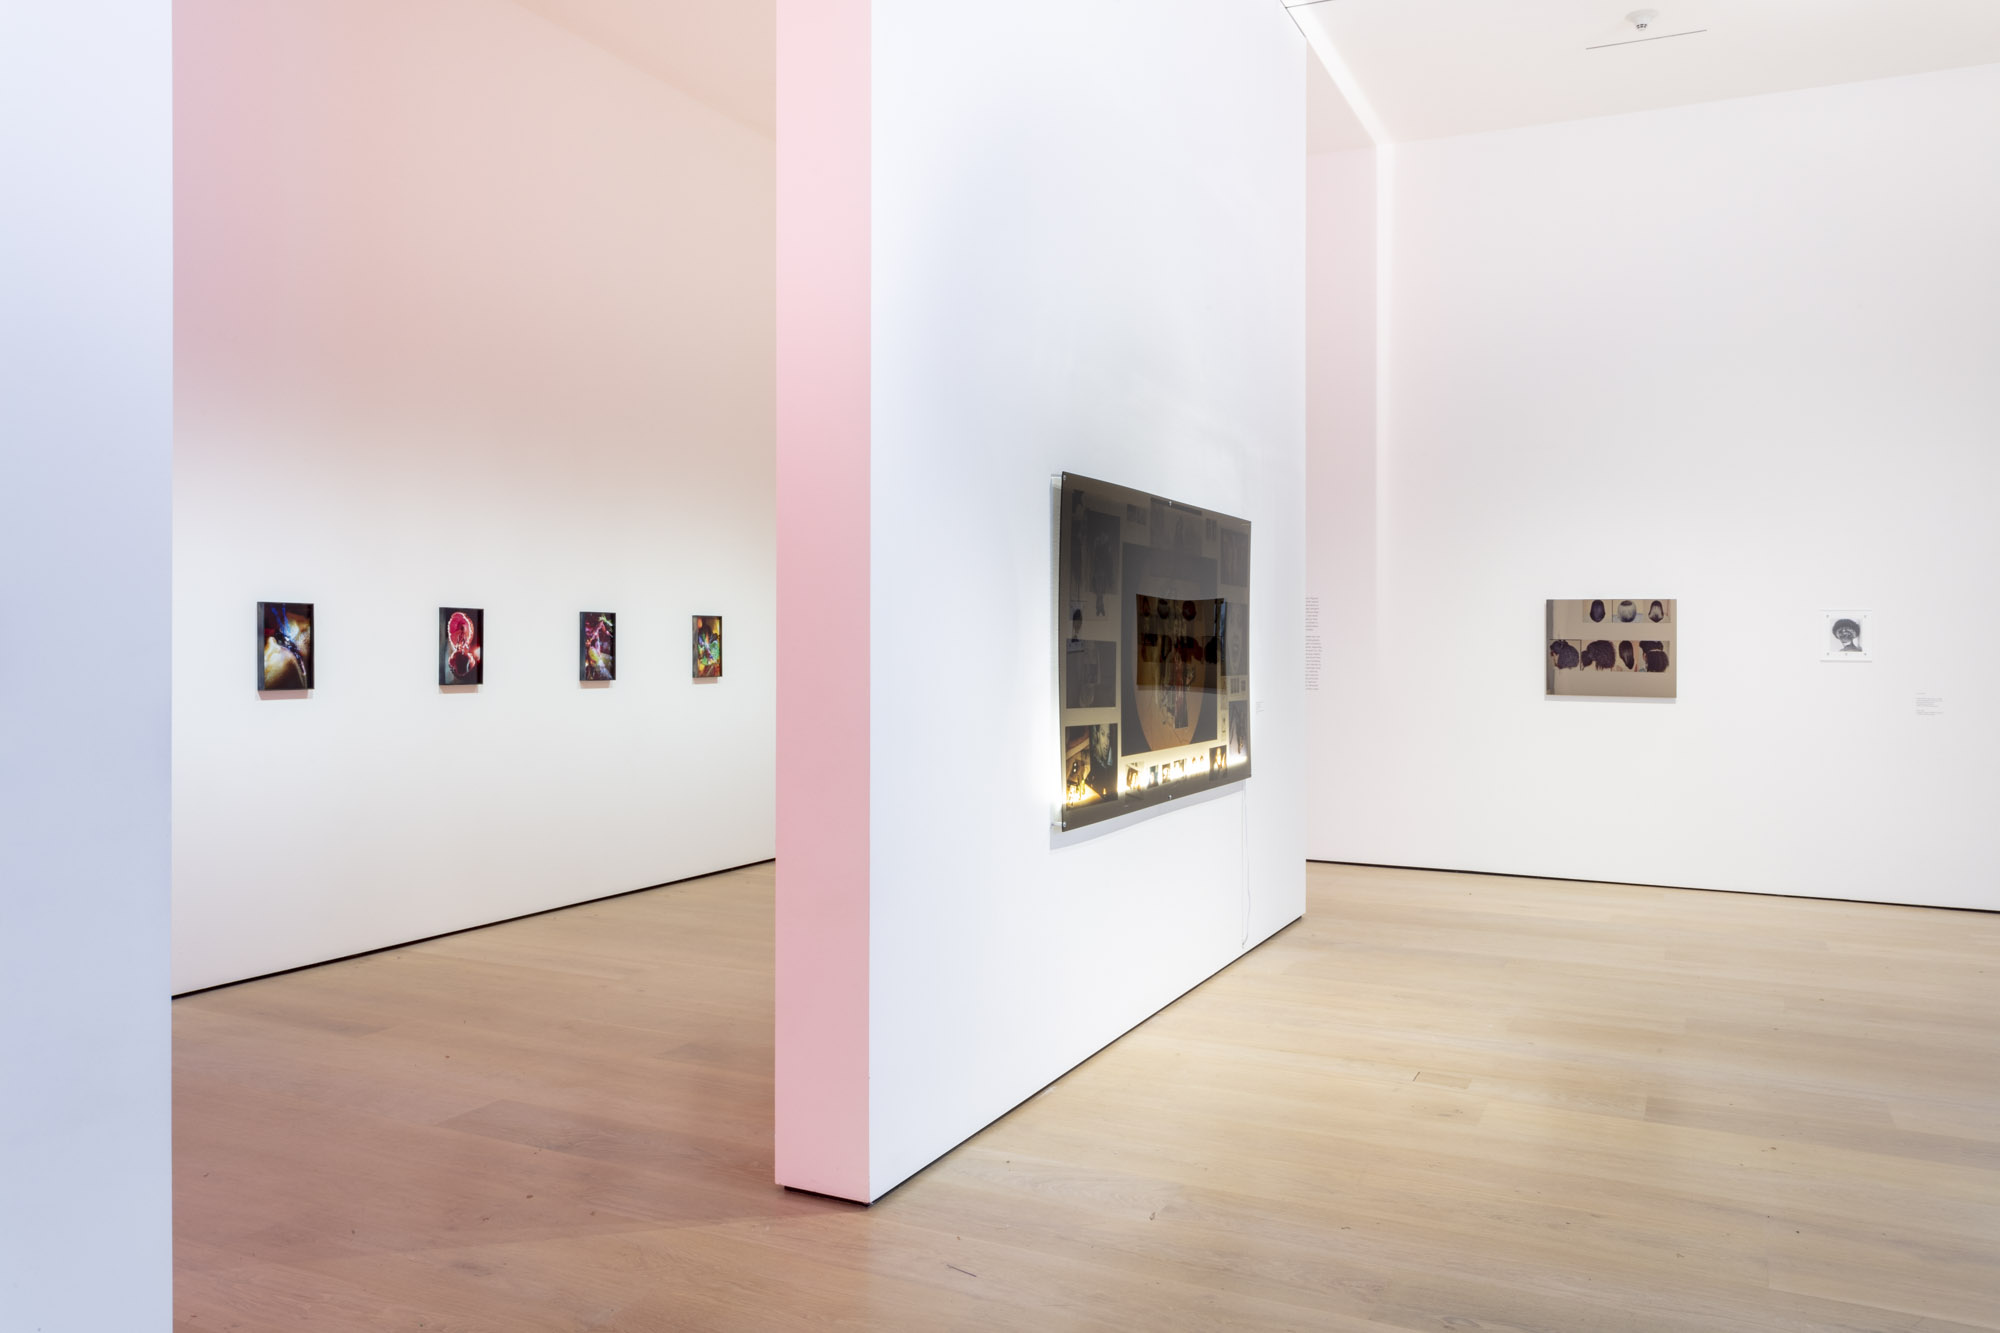 """An installation view of Kandis Williams' work at """"Made in L.A. 2020: a version."""" at Hammer Museum, Los Angeles. 